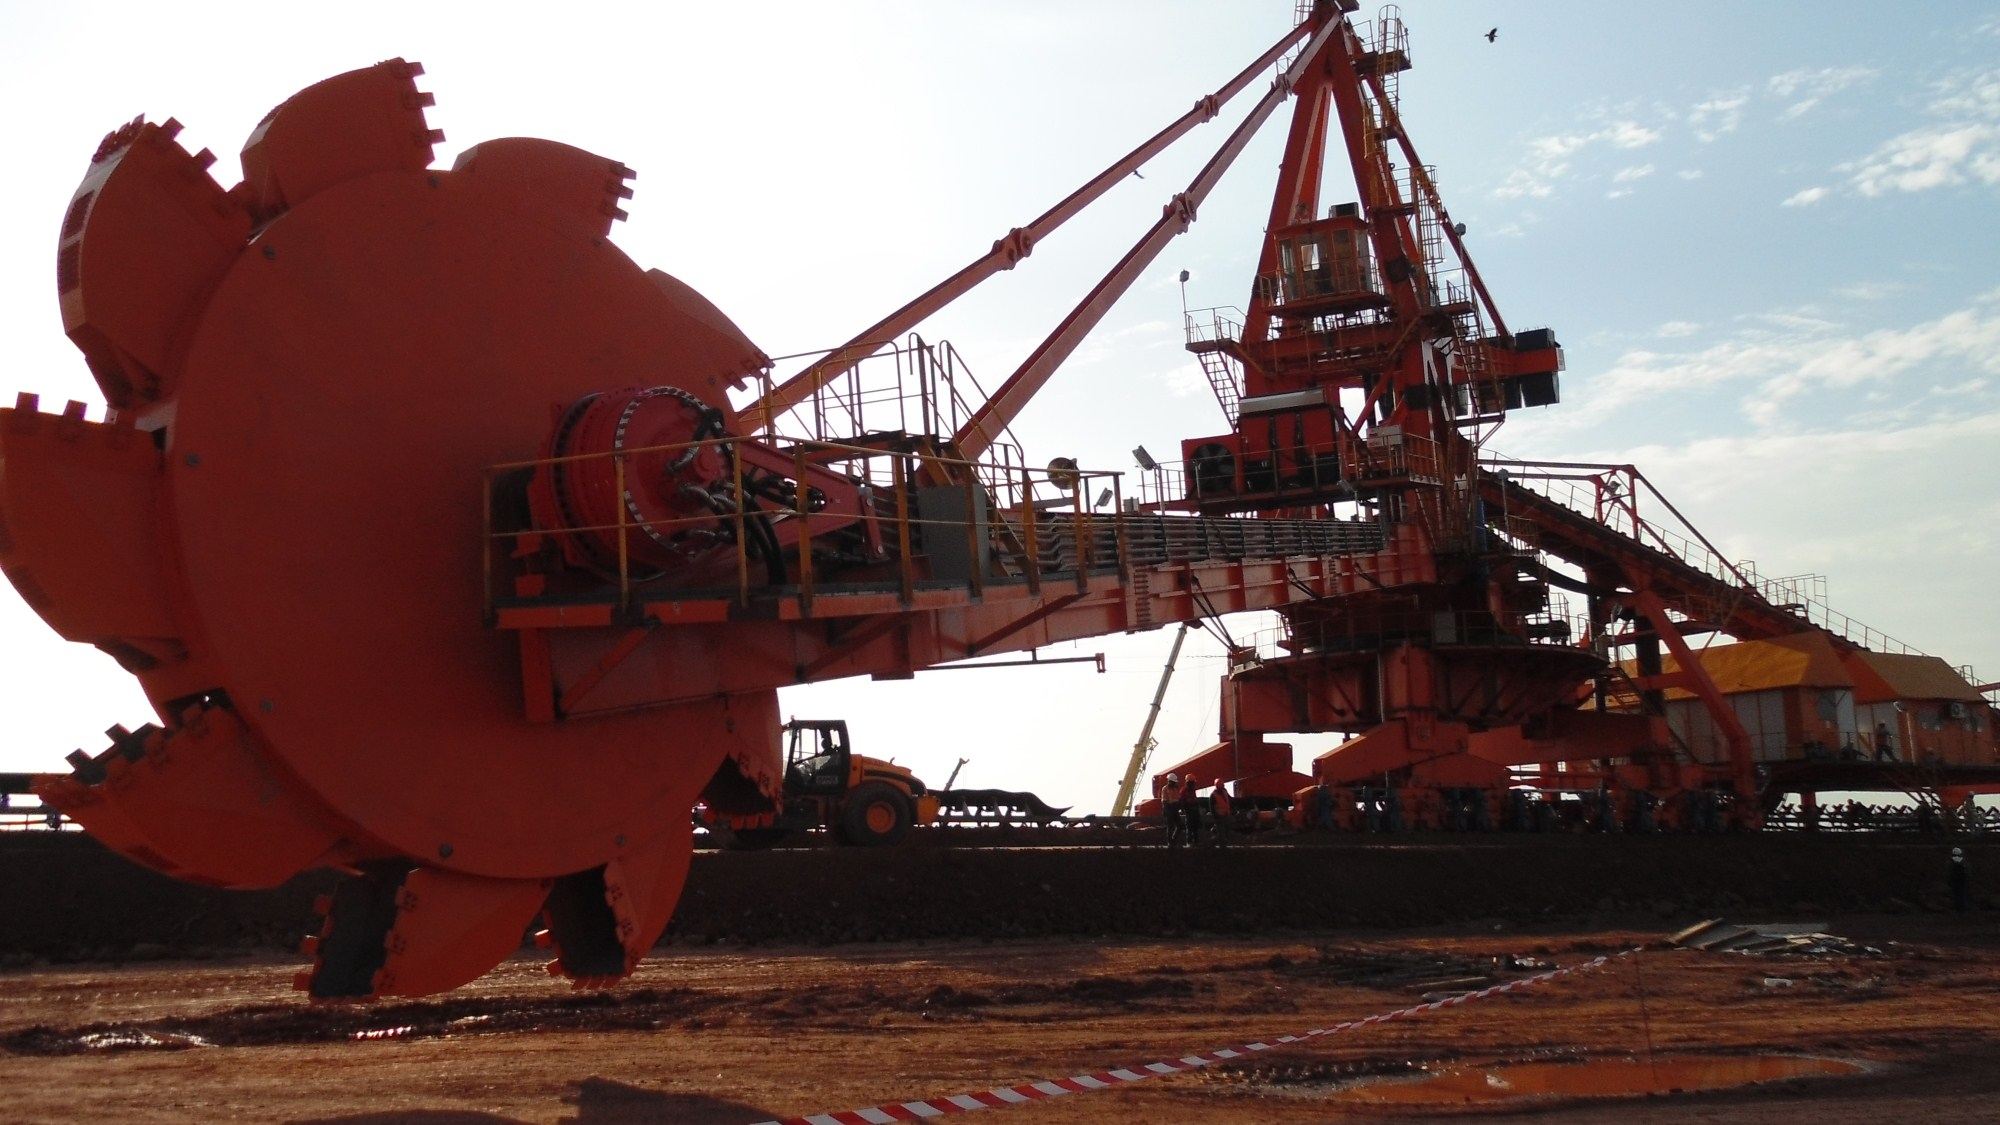 The professional Boom type bucket wheel S&R manufacturer